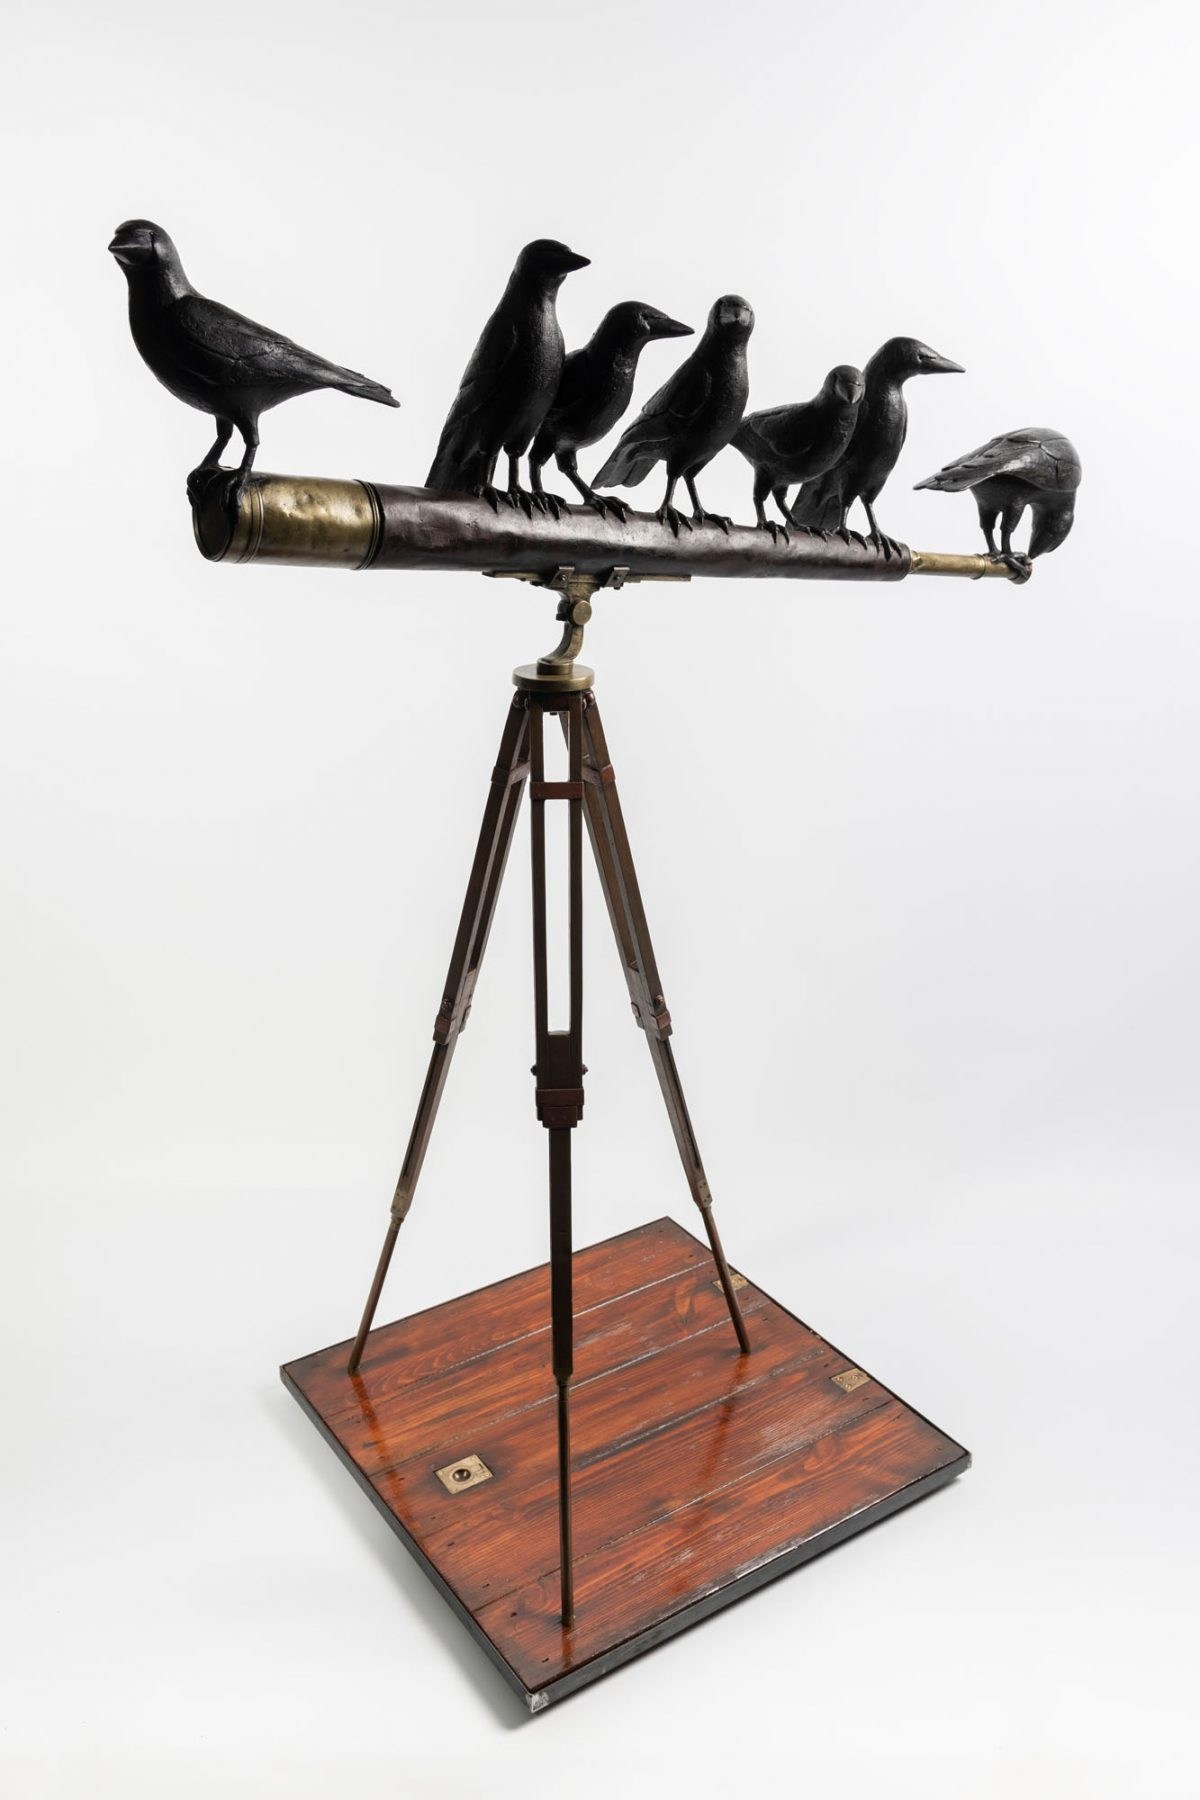 Martin Norman 'Crows on a Telescope'